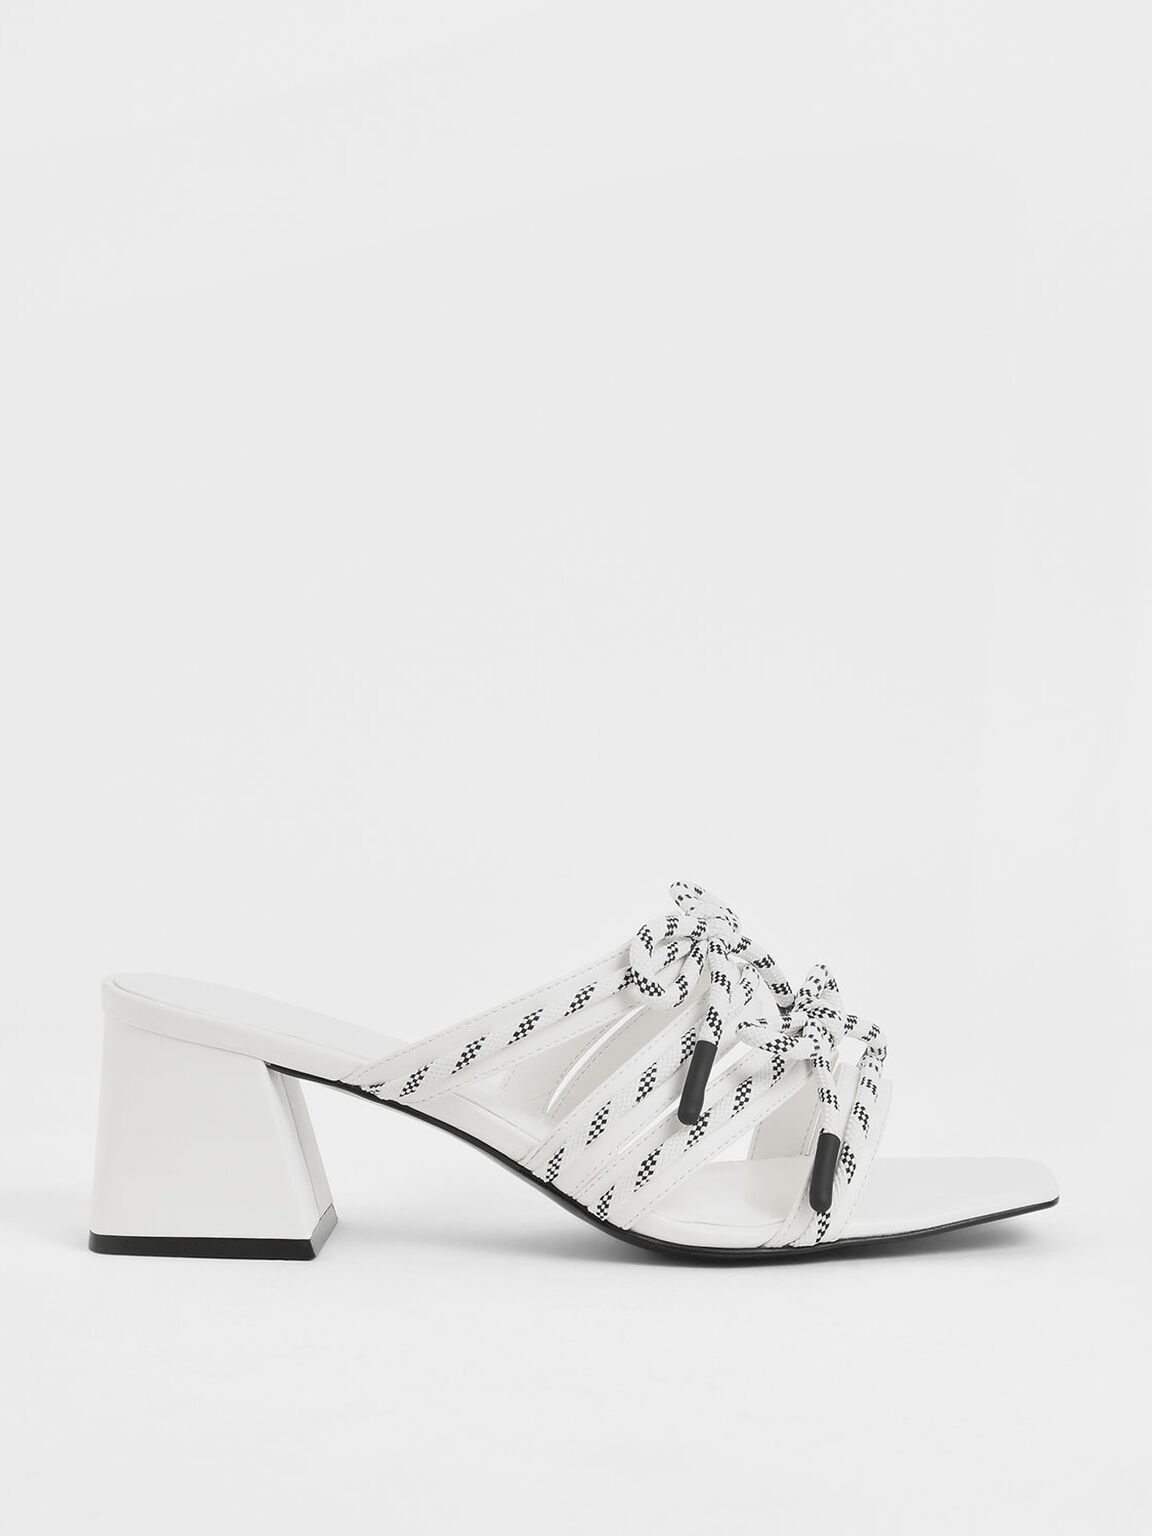 Nylon Lace Strap Slide Sandals, White, hi-res